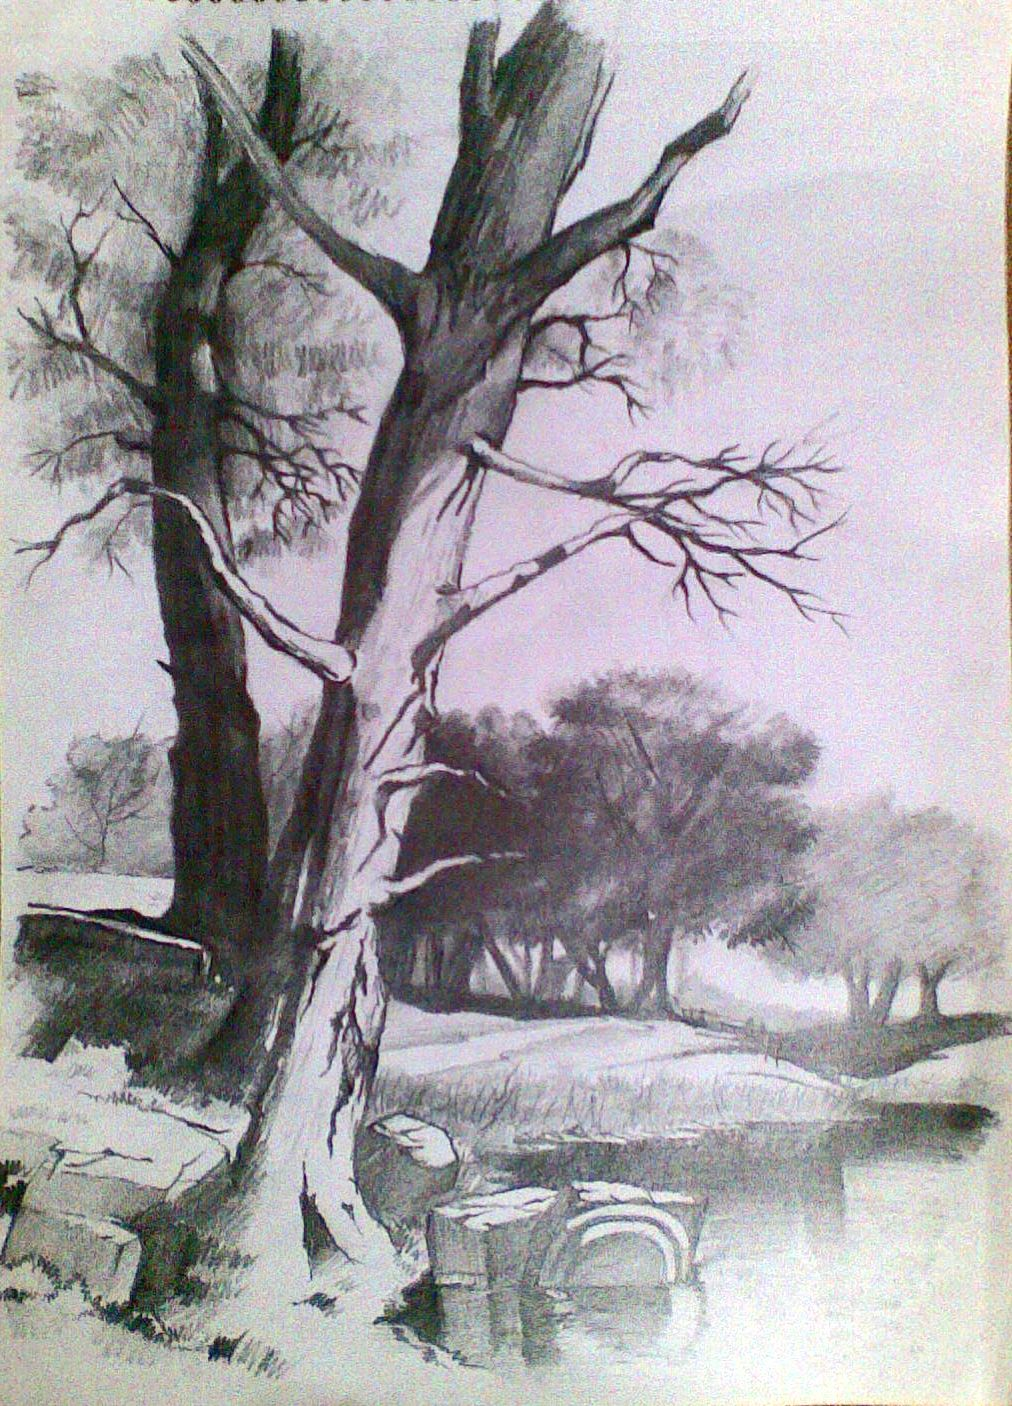 Pencil sketching tutorial beginners photo 1012 for Beautiful drawings of trees